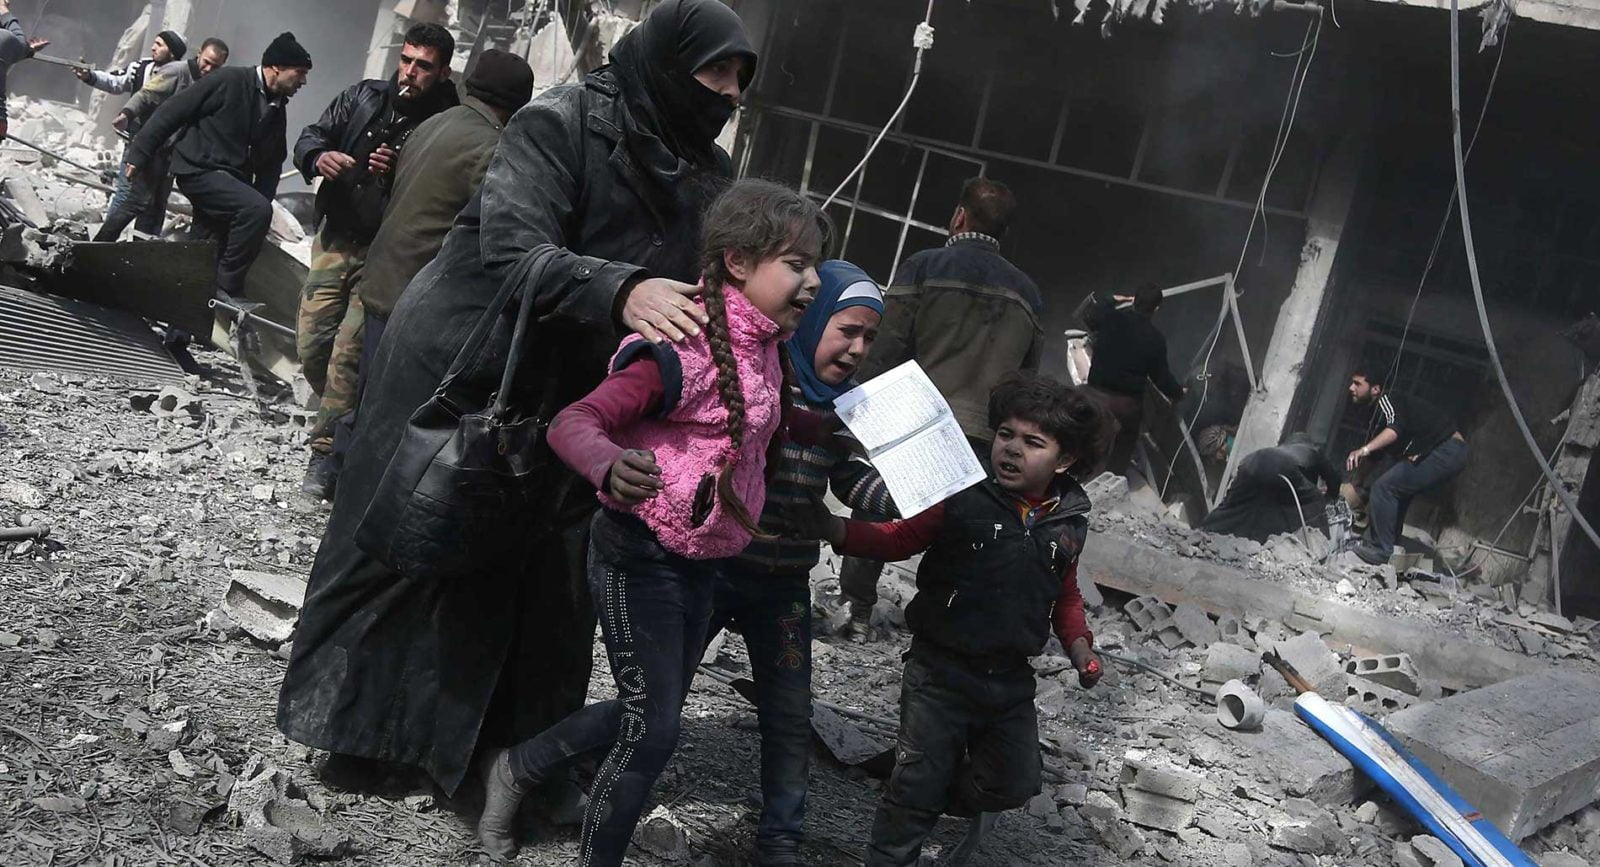 A Syrian woman and children run for cover amid the rubble